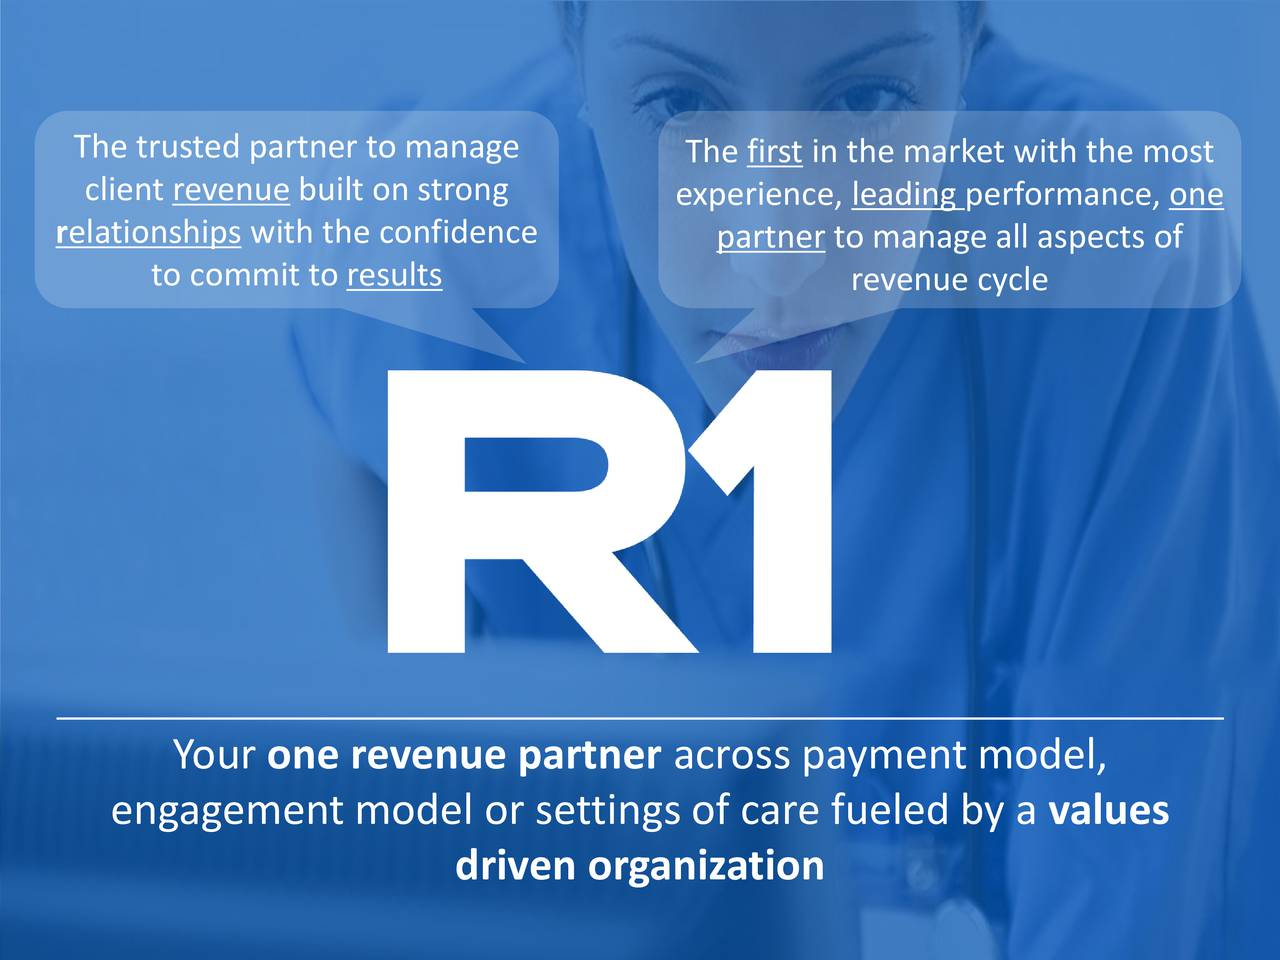 R1 RCM, Phreesia Partner to Provide Seamless Front-End Patient Experience